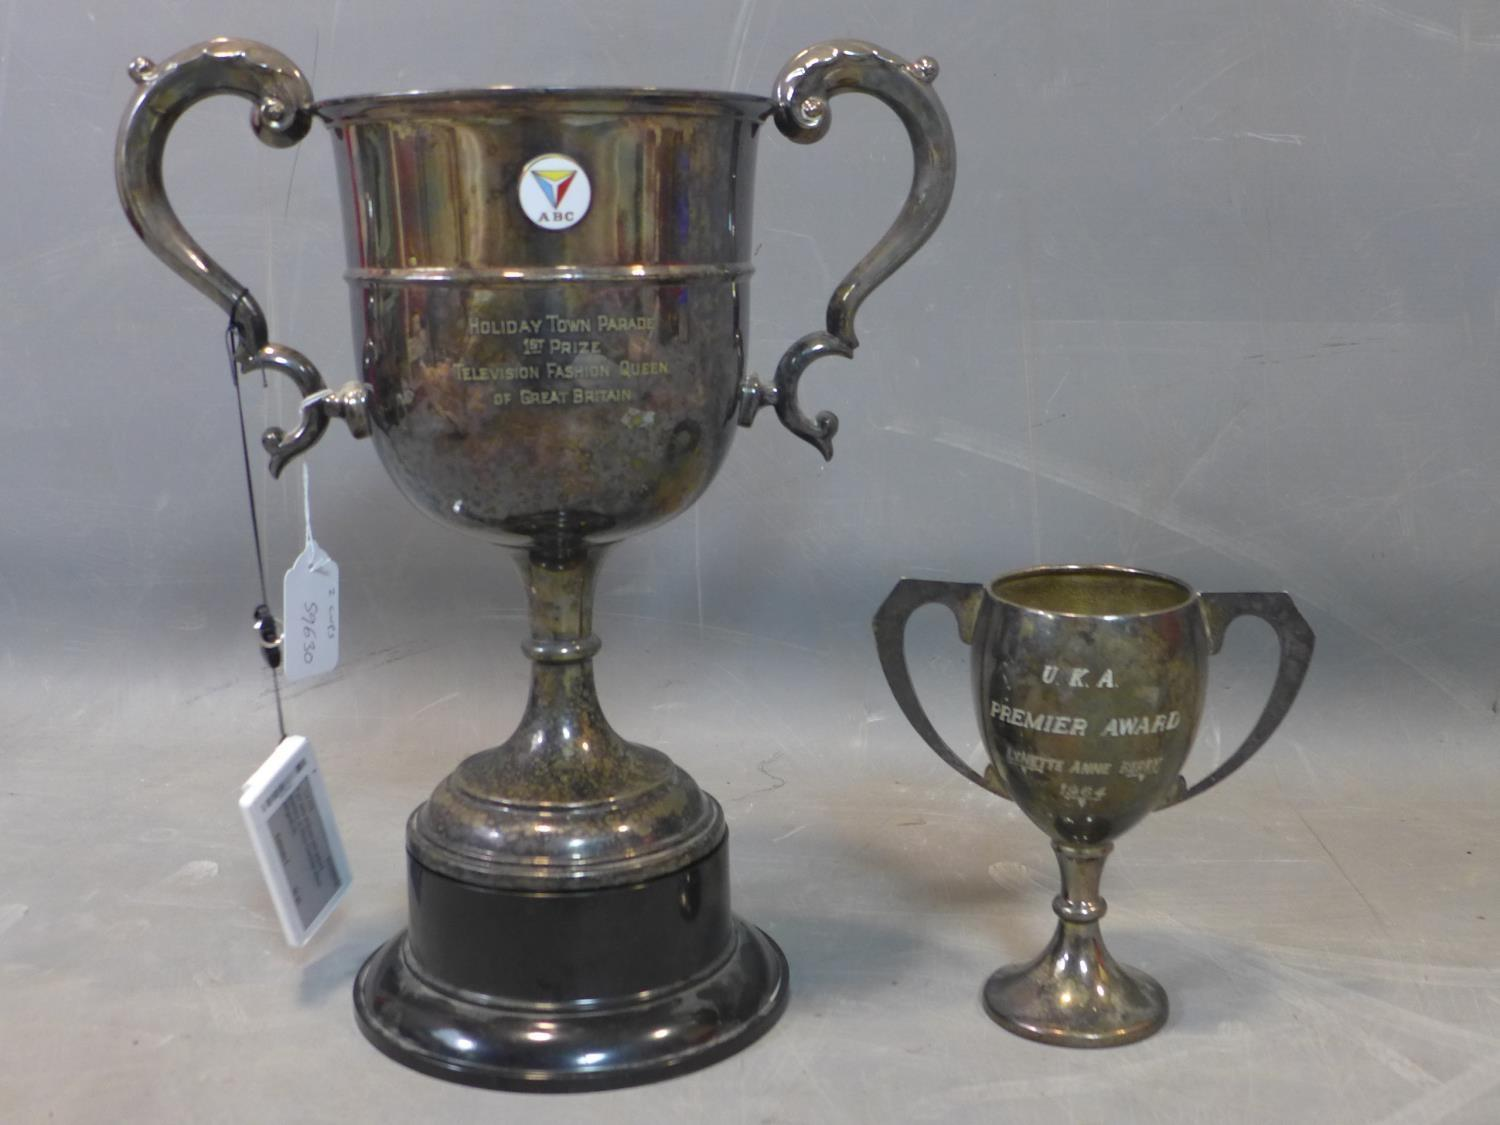 Lot 106 - A large twin handle silver plated trophy for 'Holiday Town Parade 1st Price Television Fashion Queen